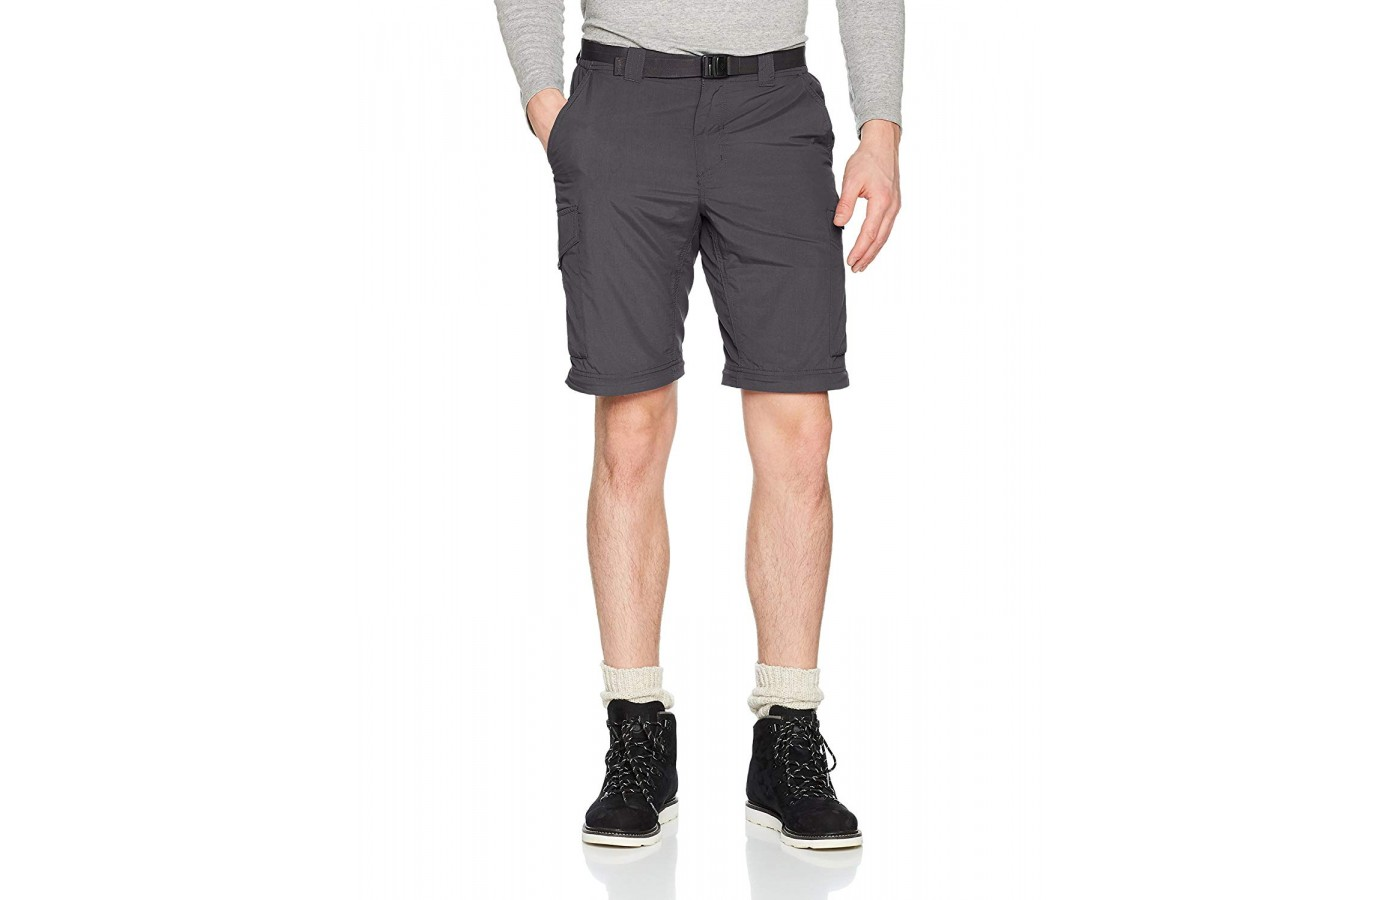 The shorts have a ten-inch inseam for excellent coverage on the trail.